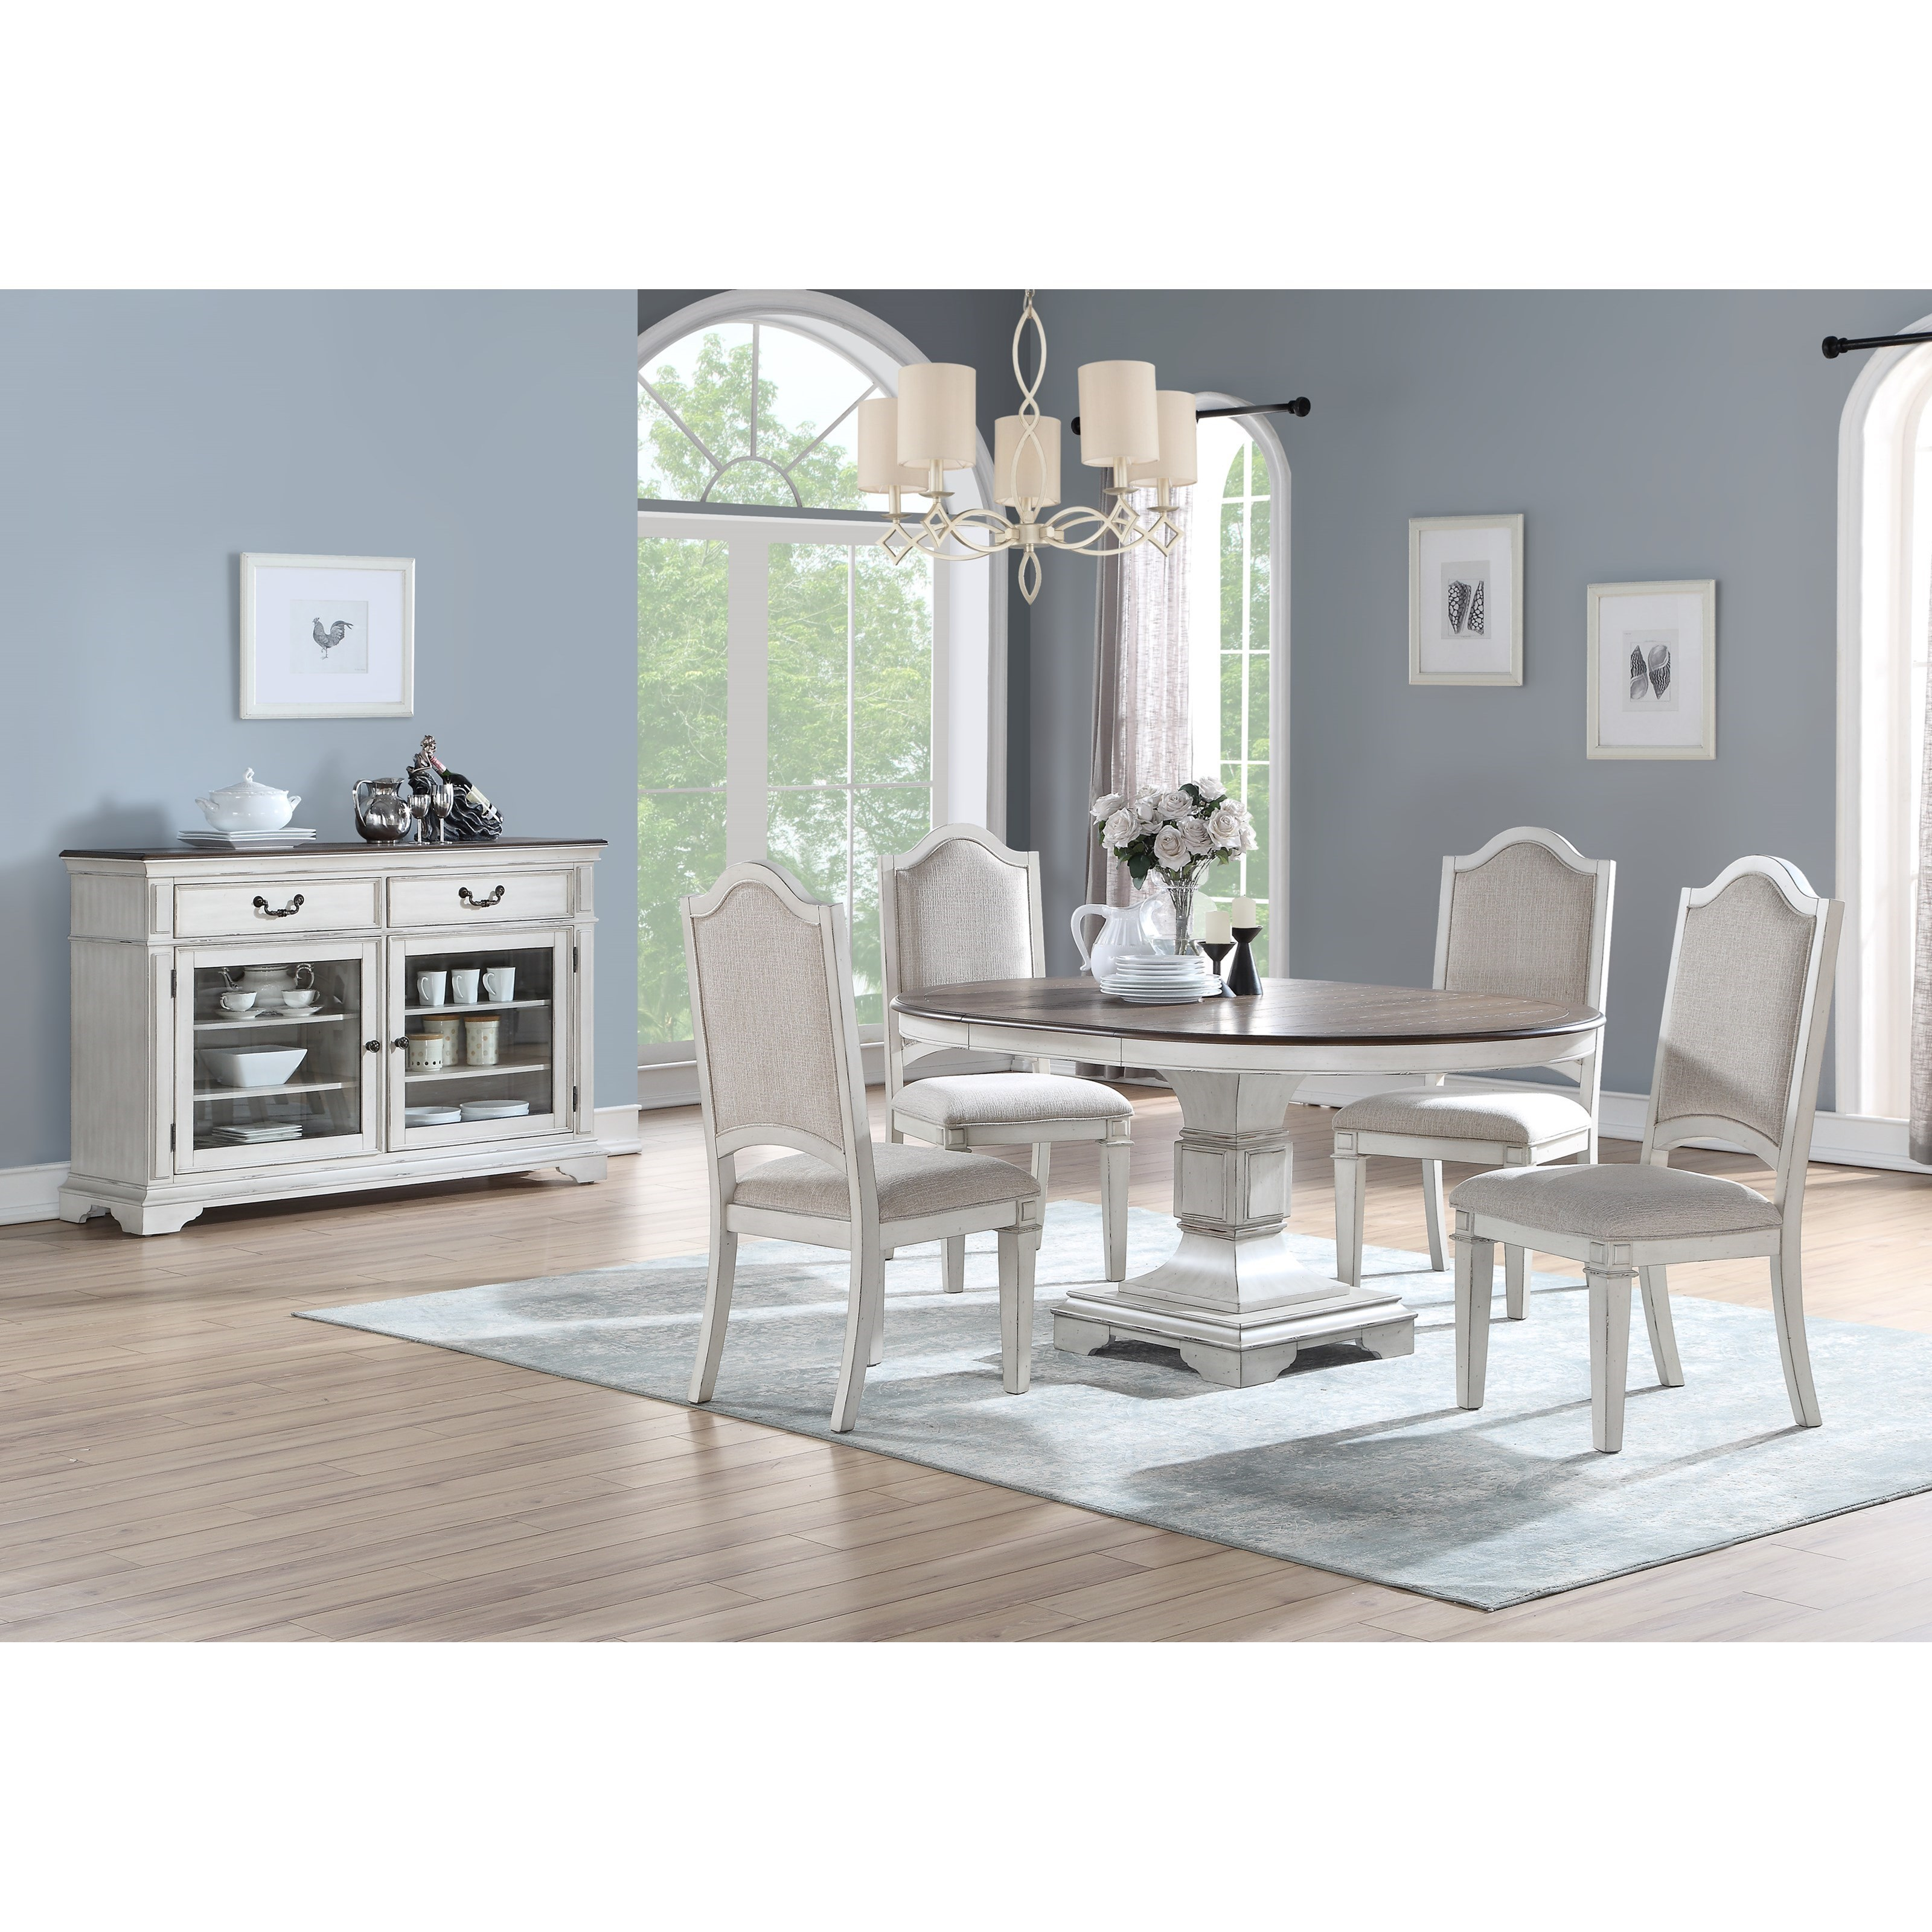 Anastasia Dining Room Group by New Classic at Rife's Home Furniture